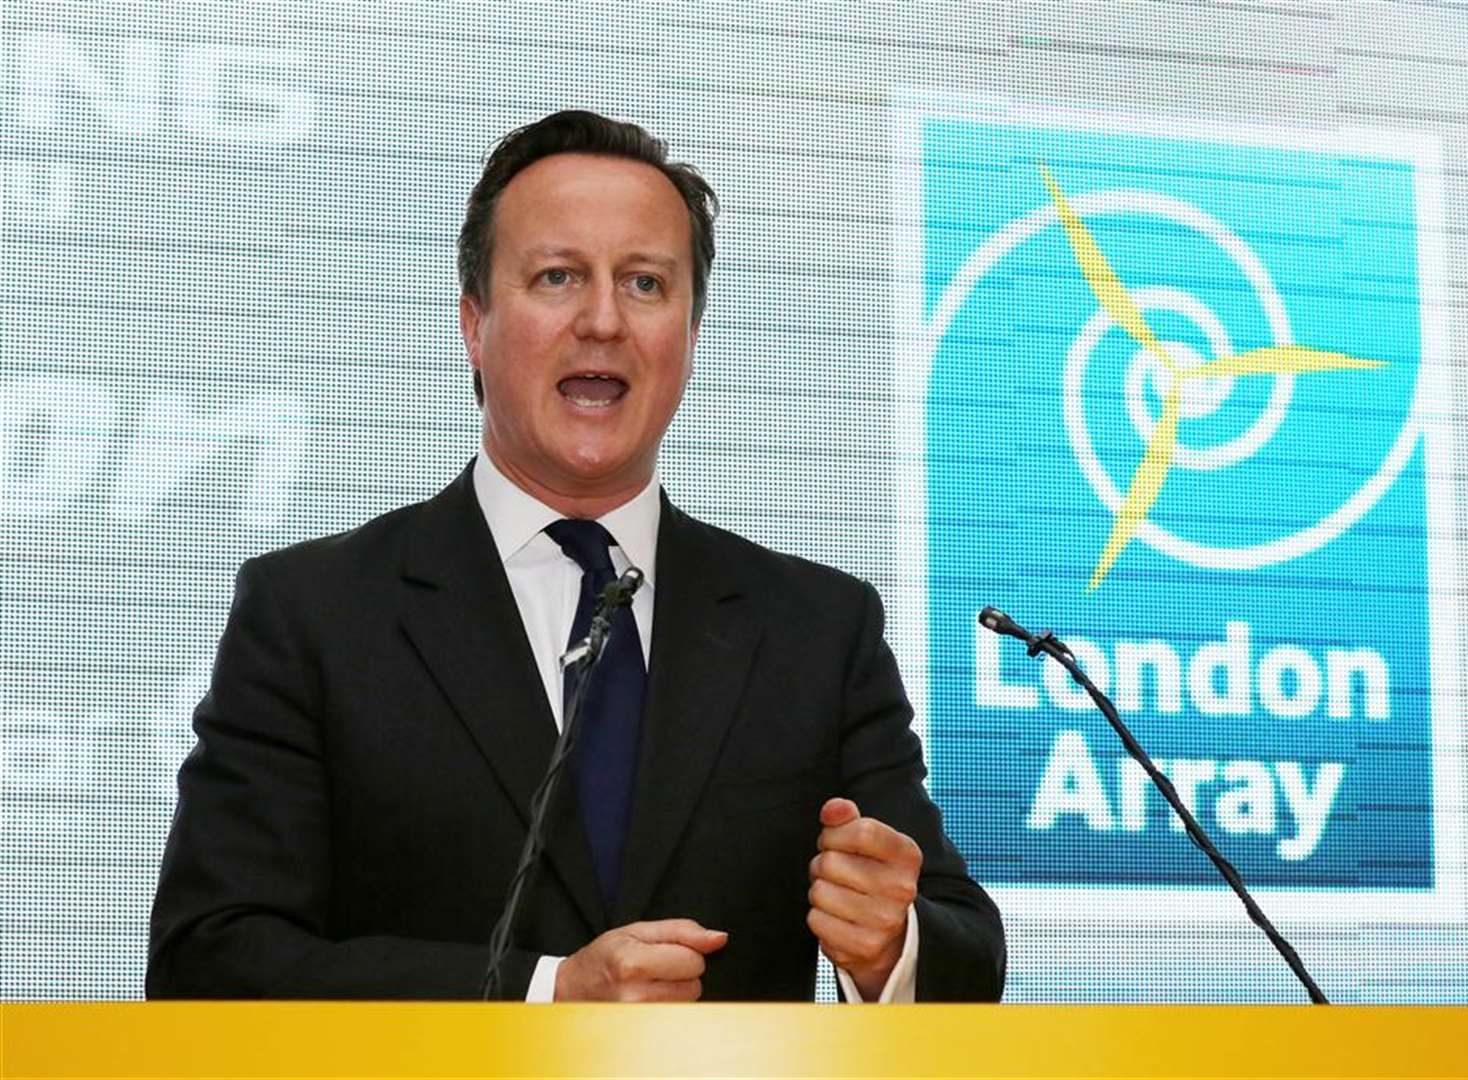 Prime Minister opens London Array wind farm